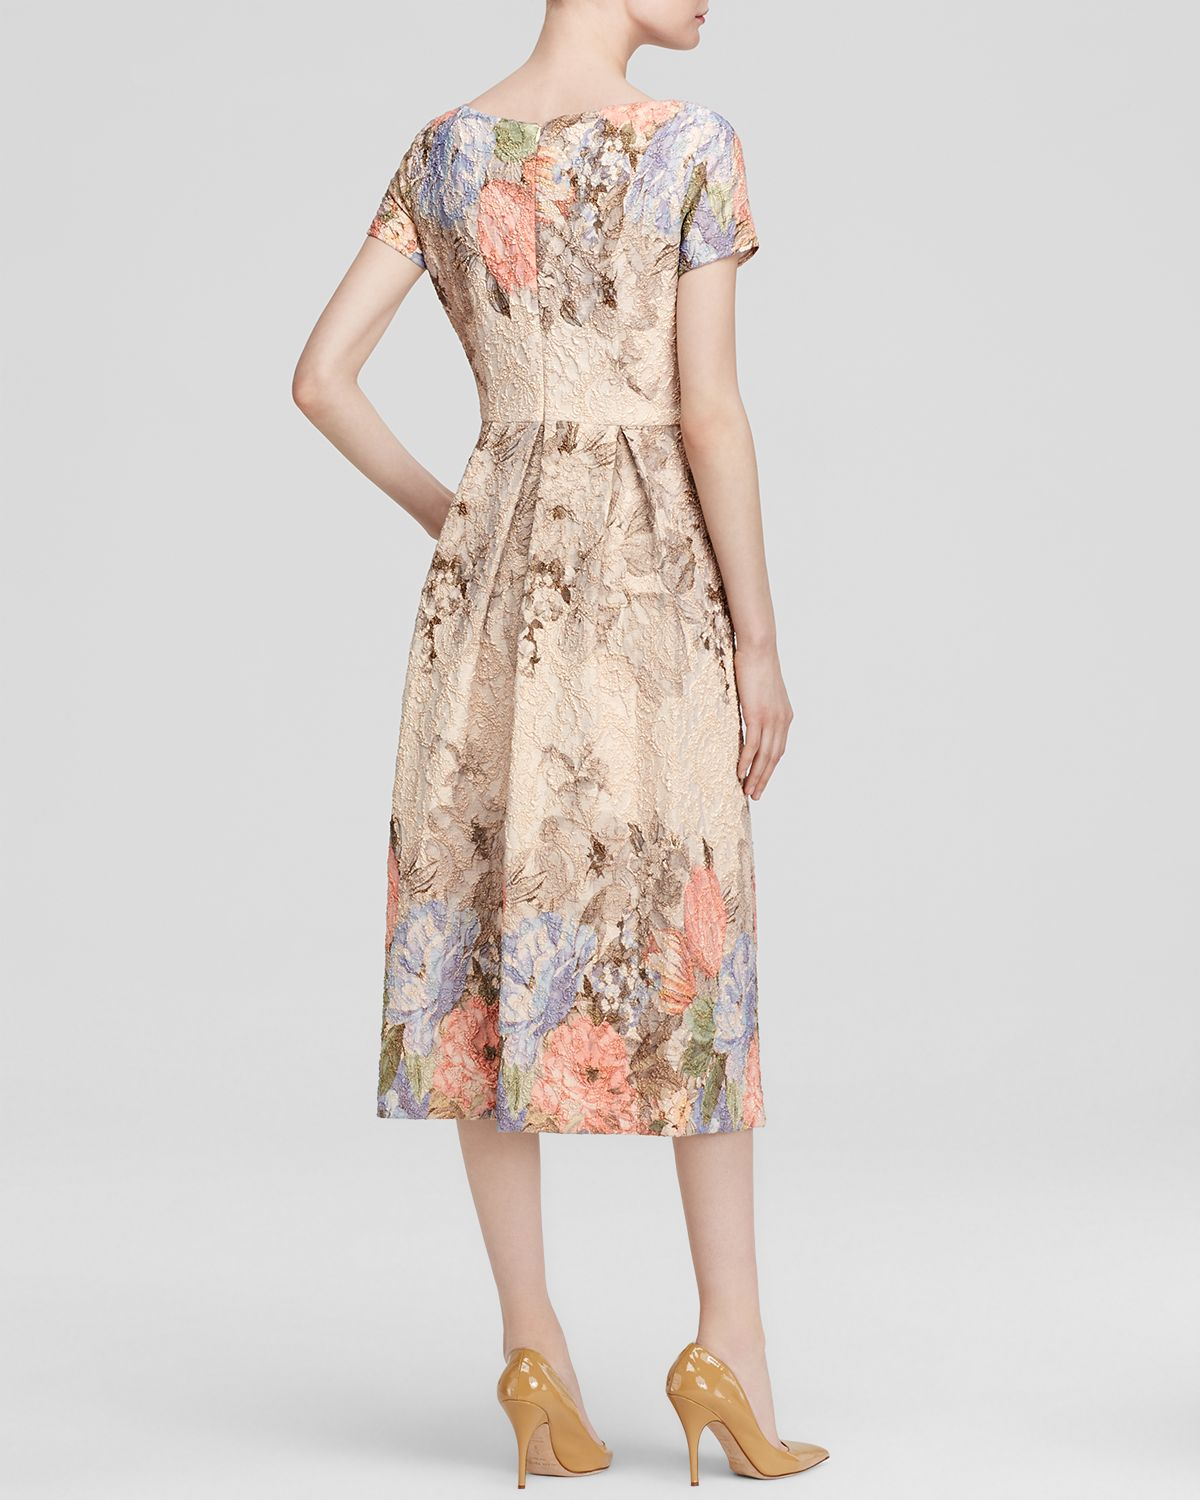 85d4ef17 Gallery. Previously sold at: Bloomingdale's · Women's Tea Dresses Women's  Adrianna Papell Floral Dress